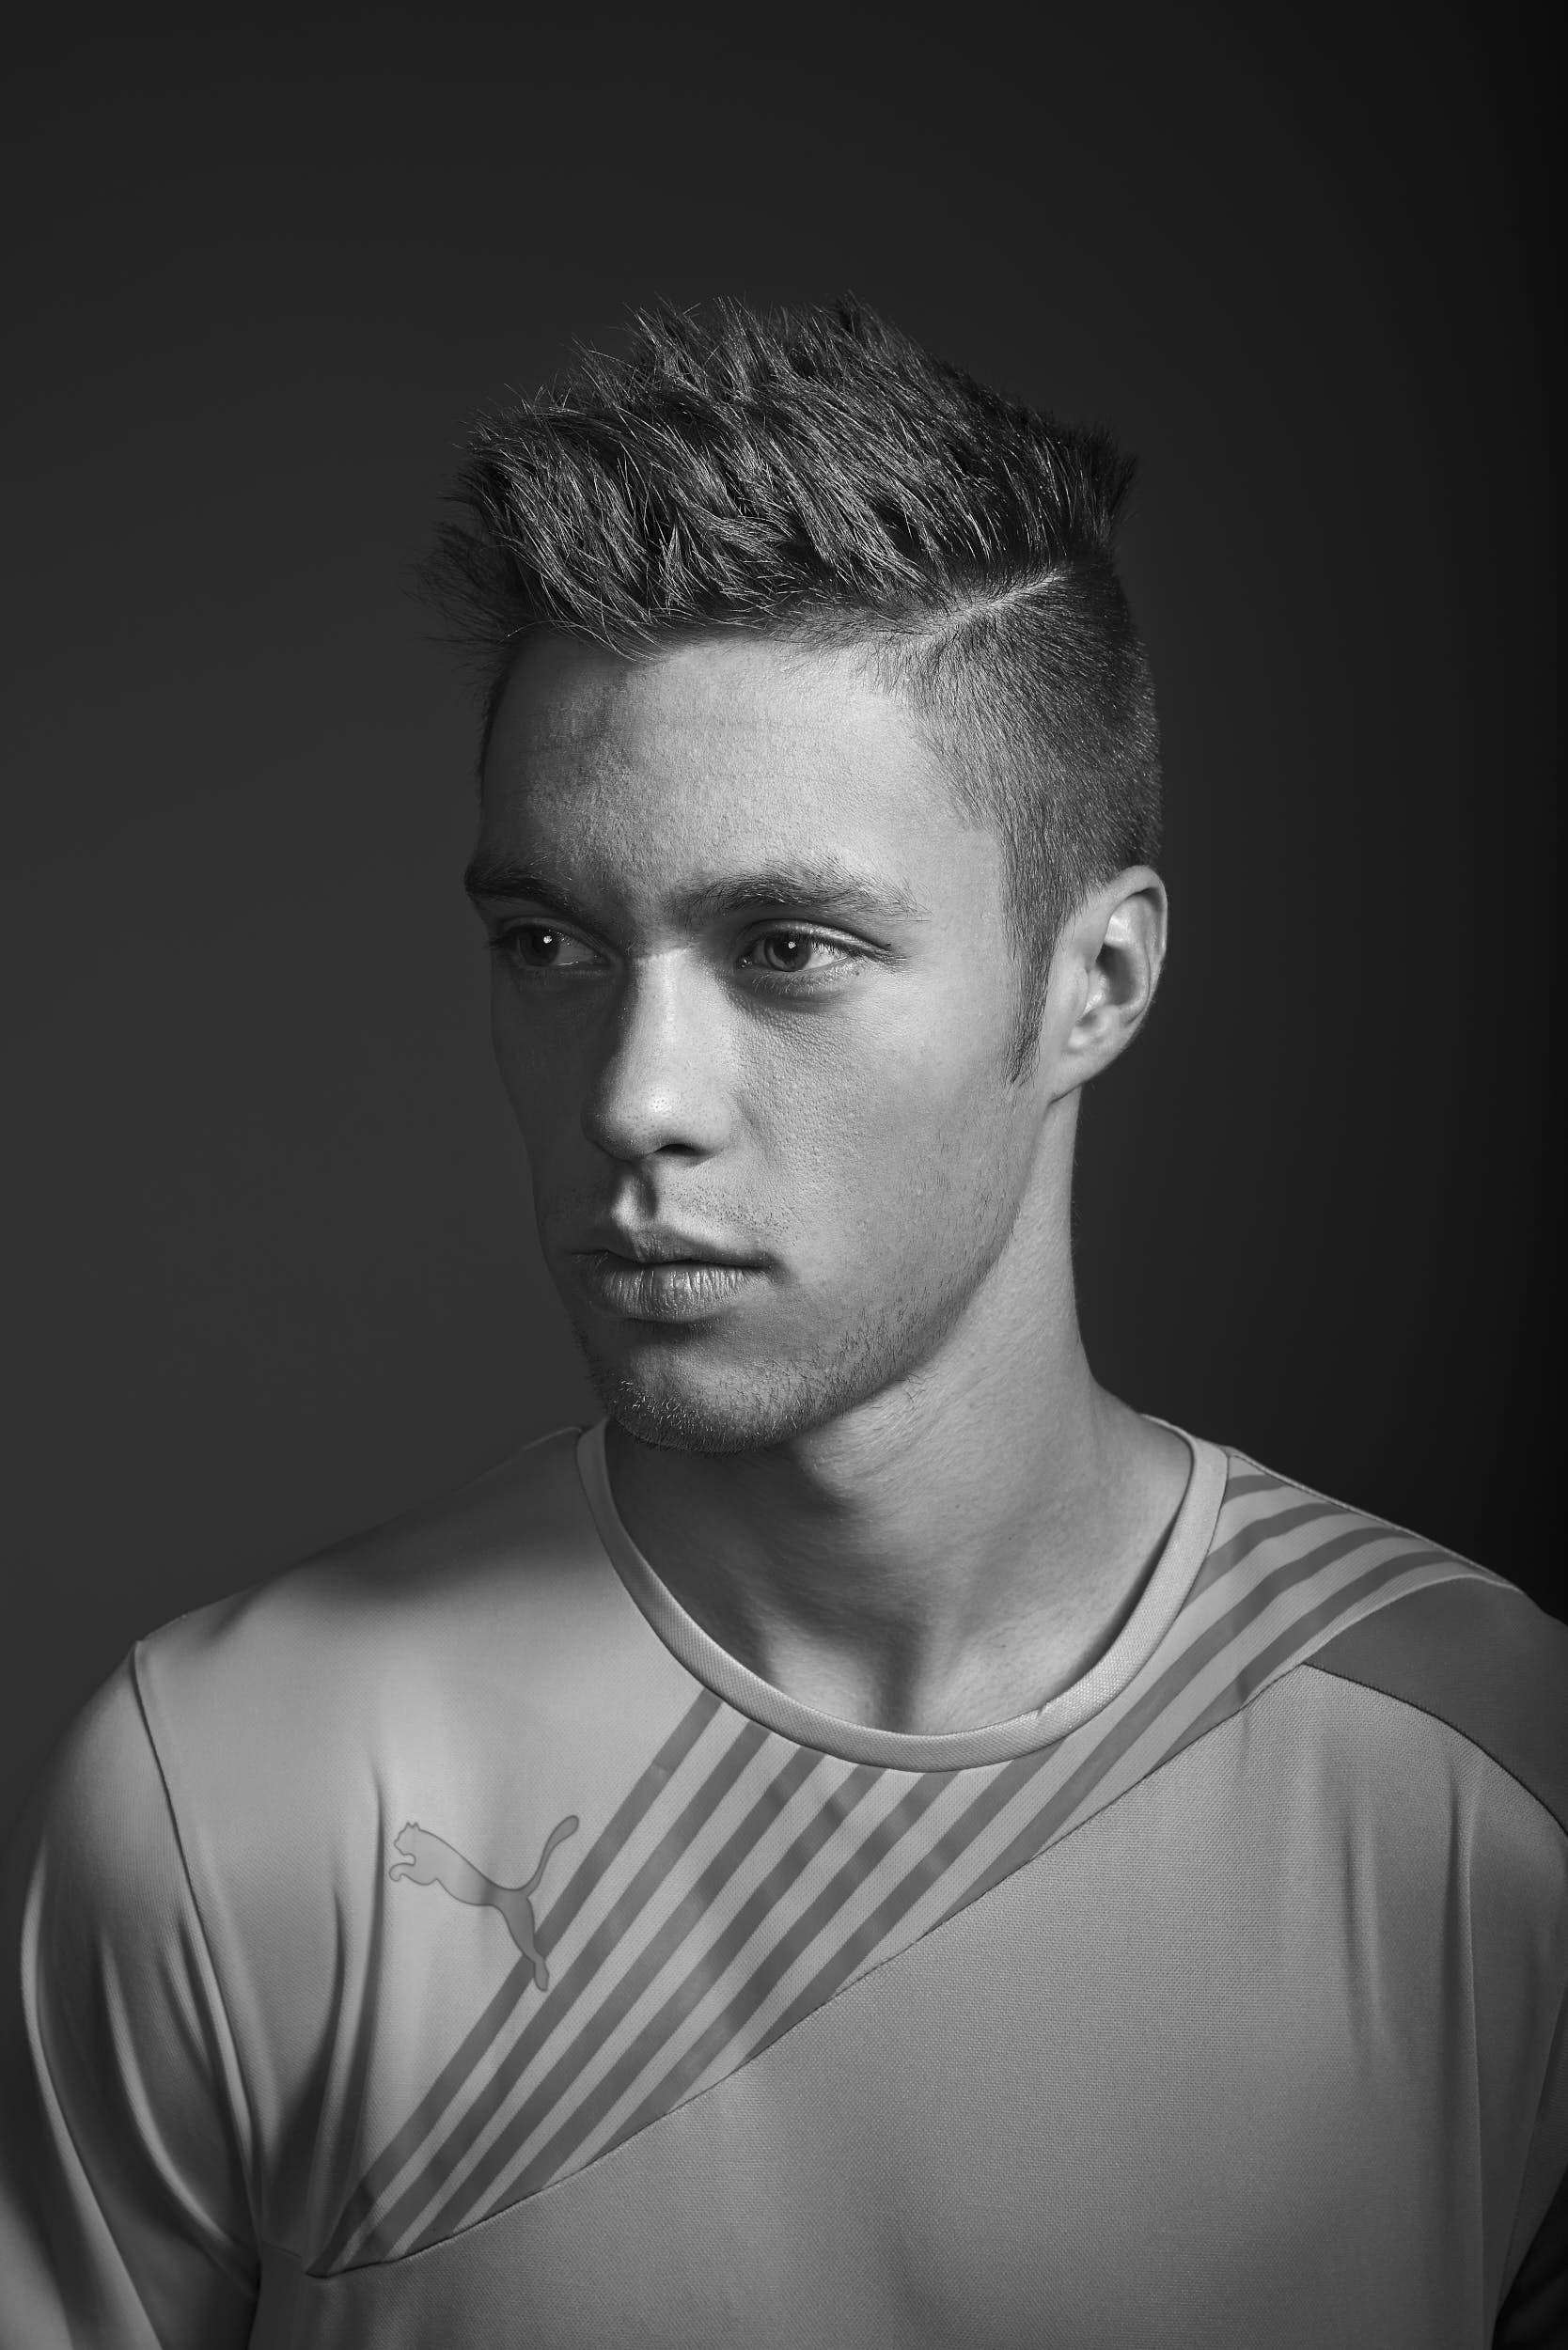 Black and white portrait of a football player.